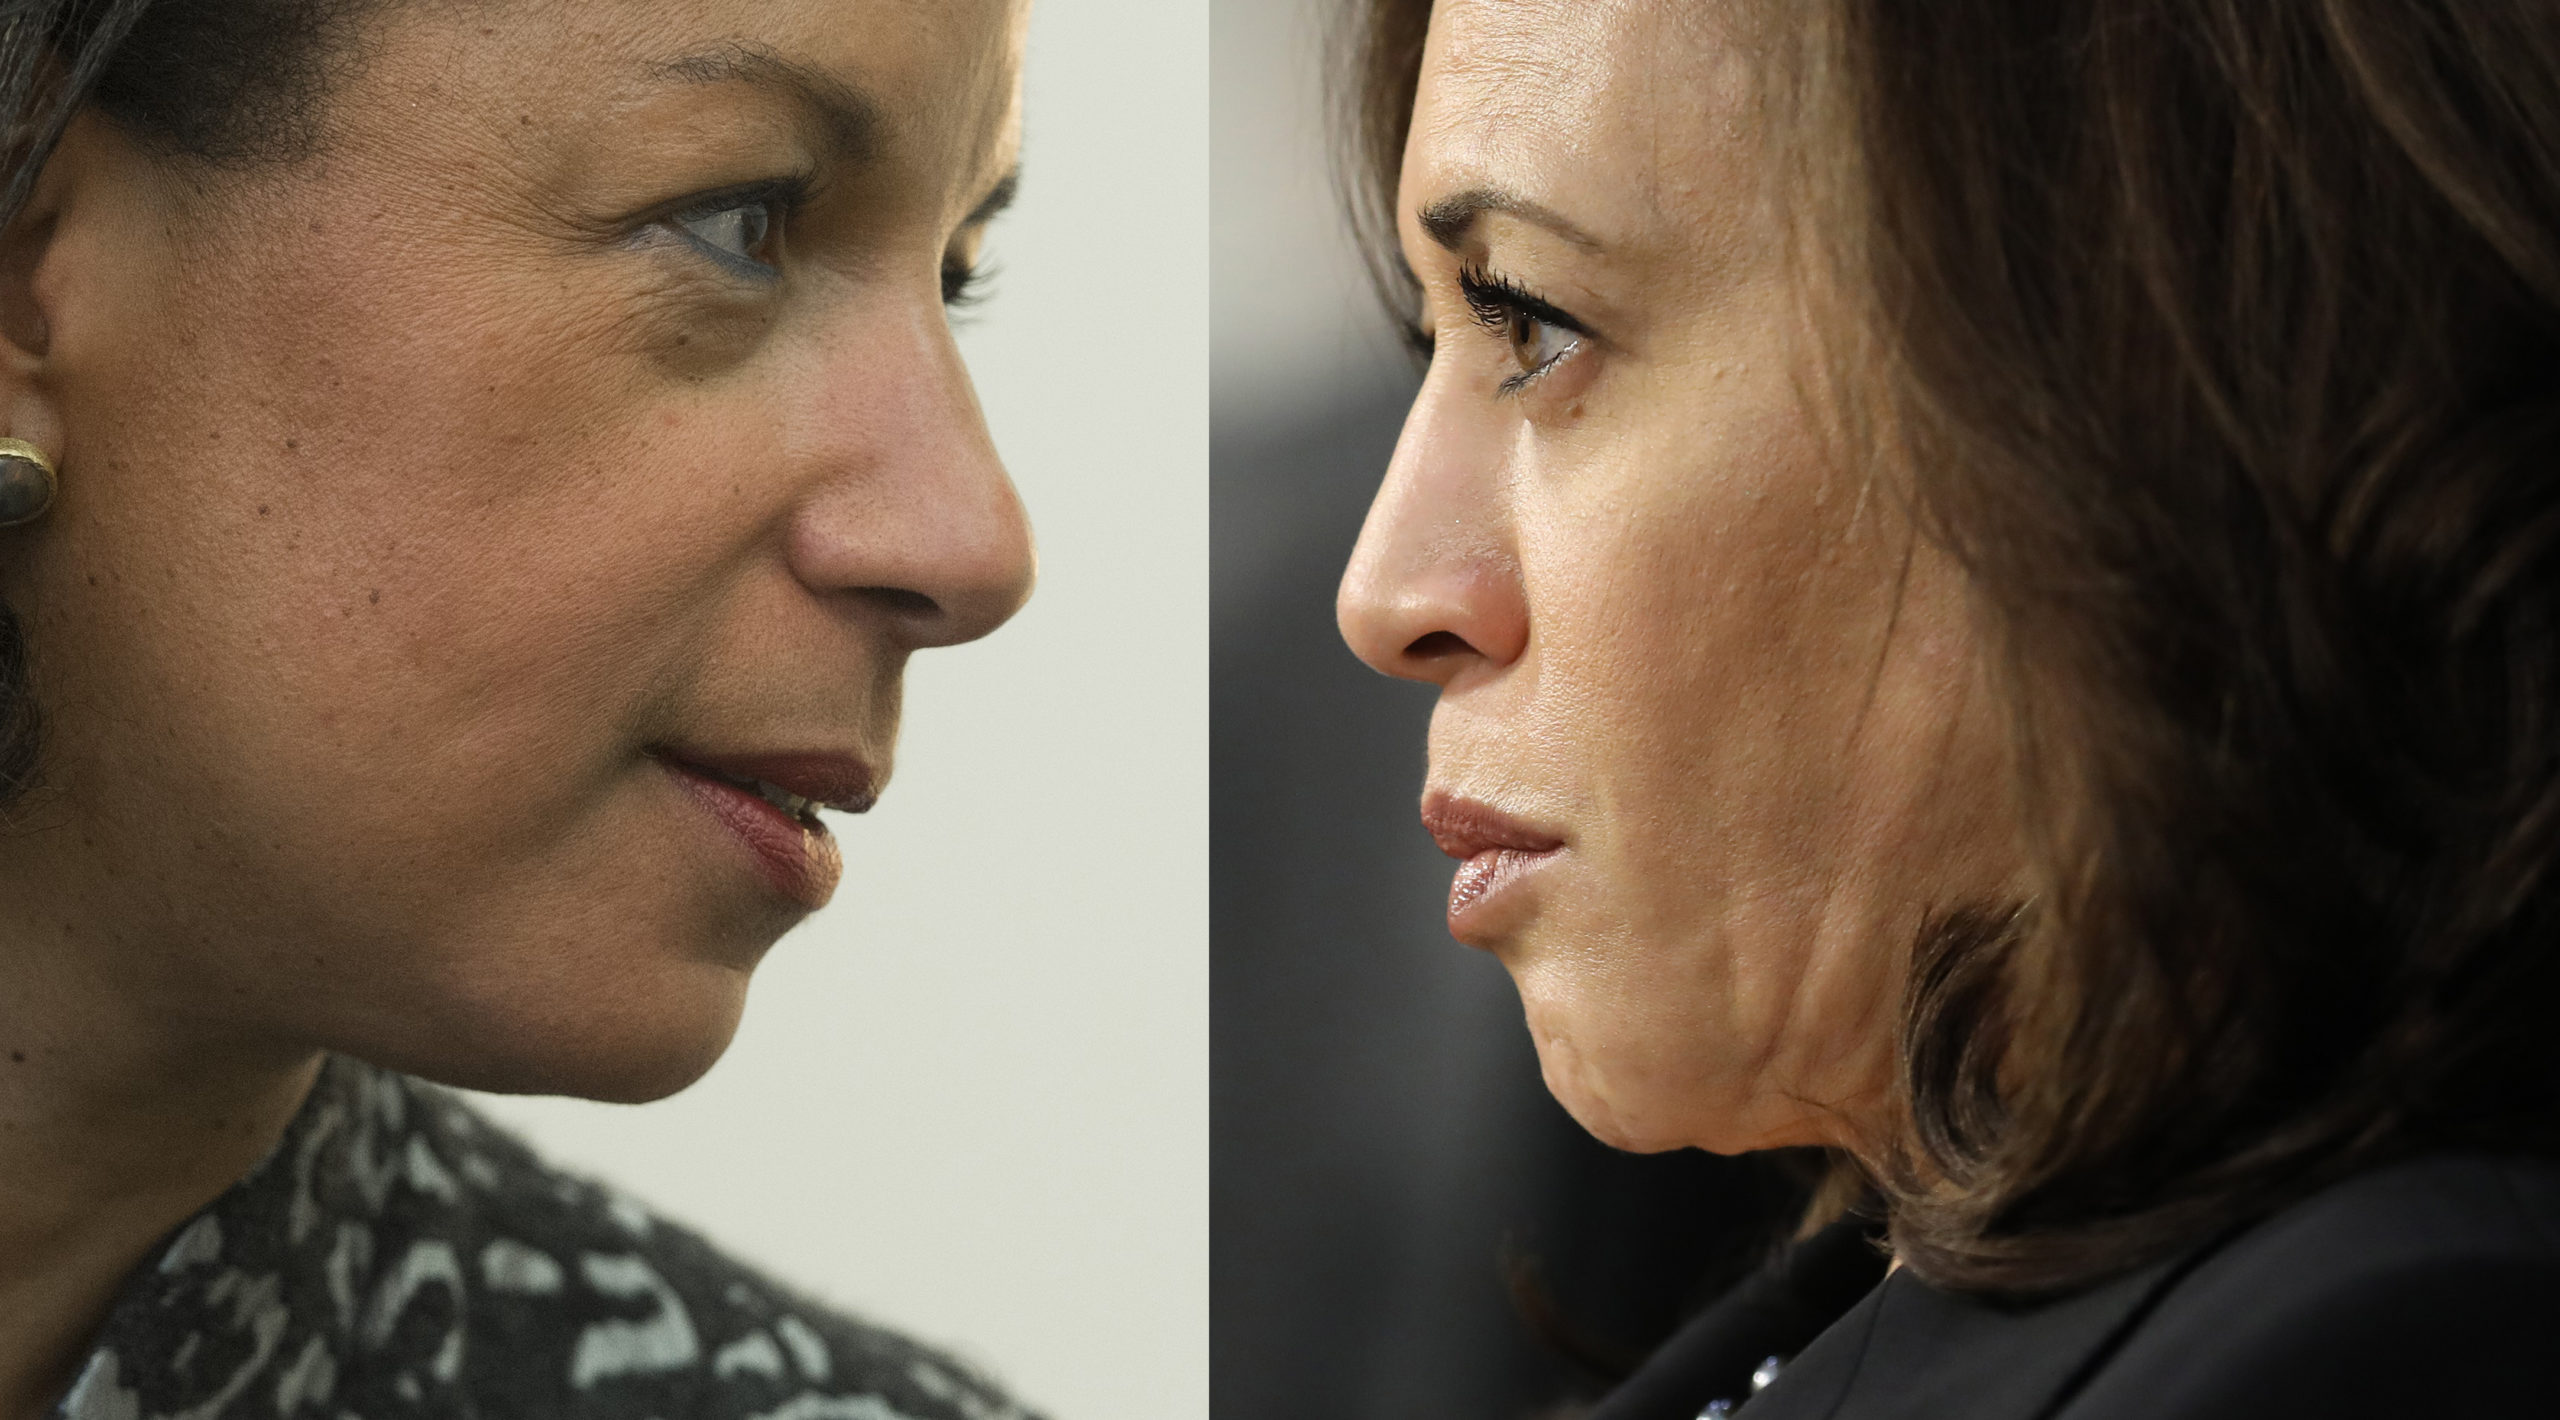 Based on Experience, Susan Rice Is Easily—by Far—the Best Choice for VP for Biden (Sorry Harris Fans, that Includes Kamala): A Tale of Two Careers